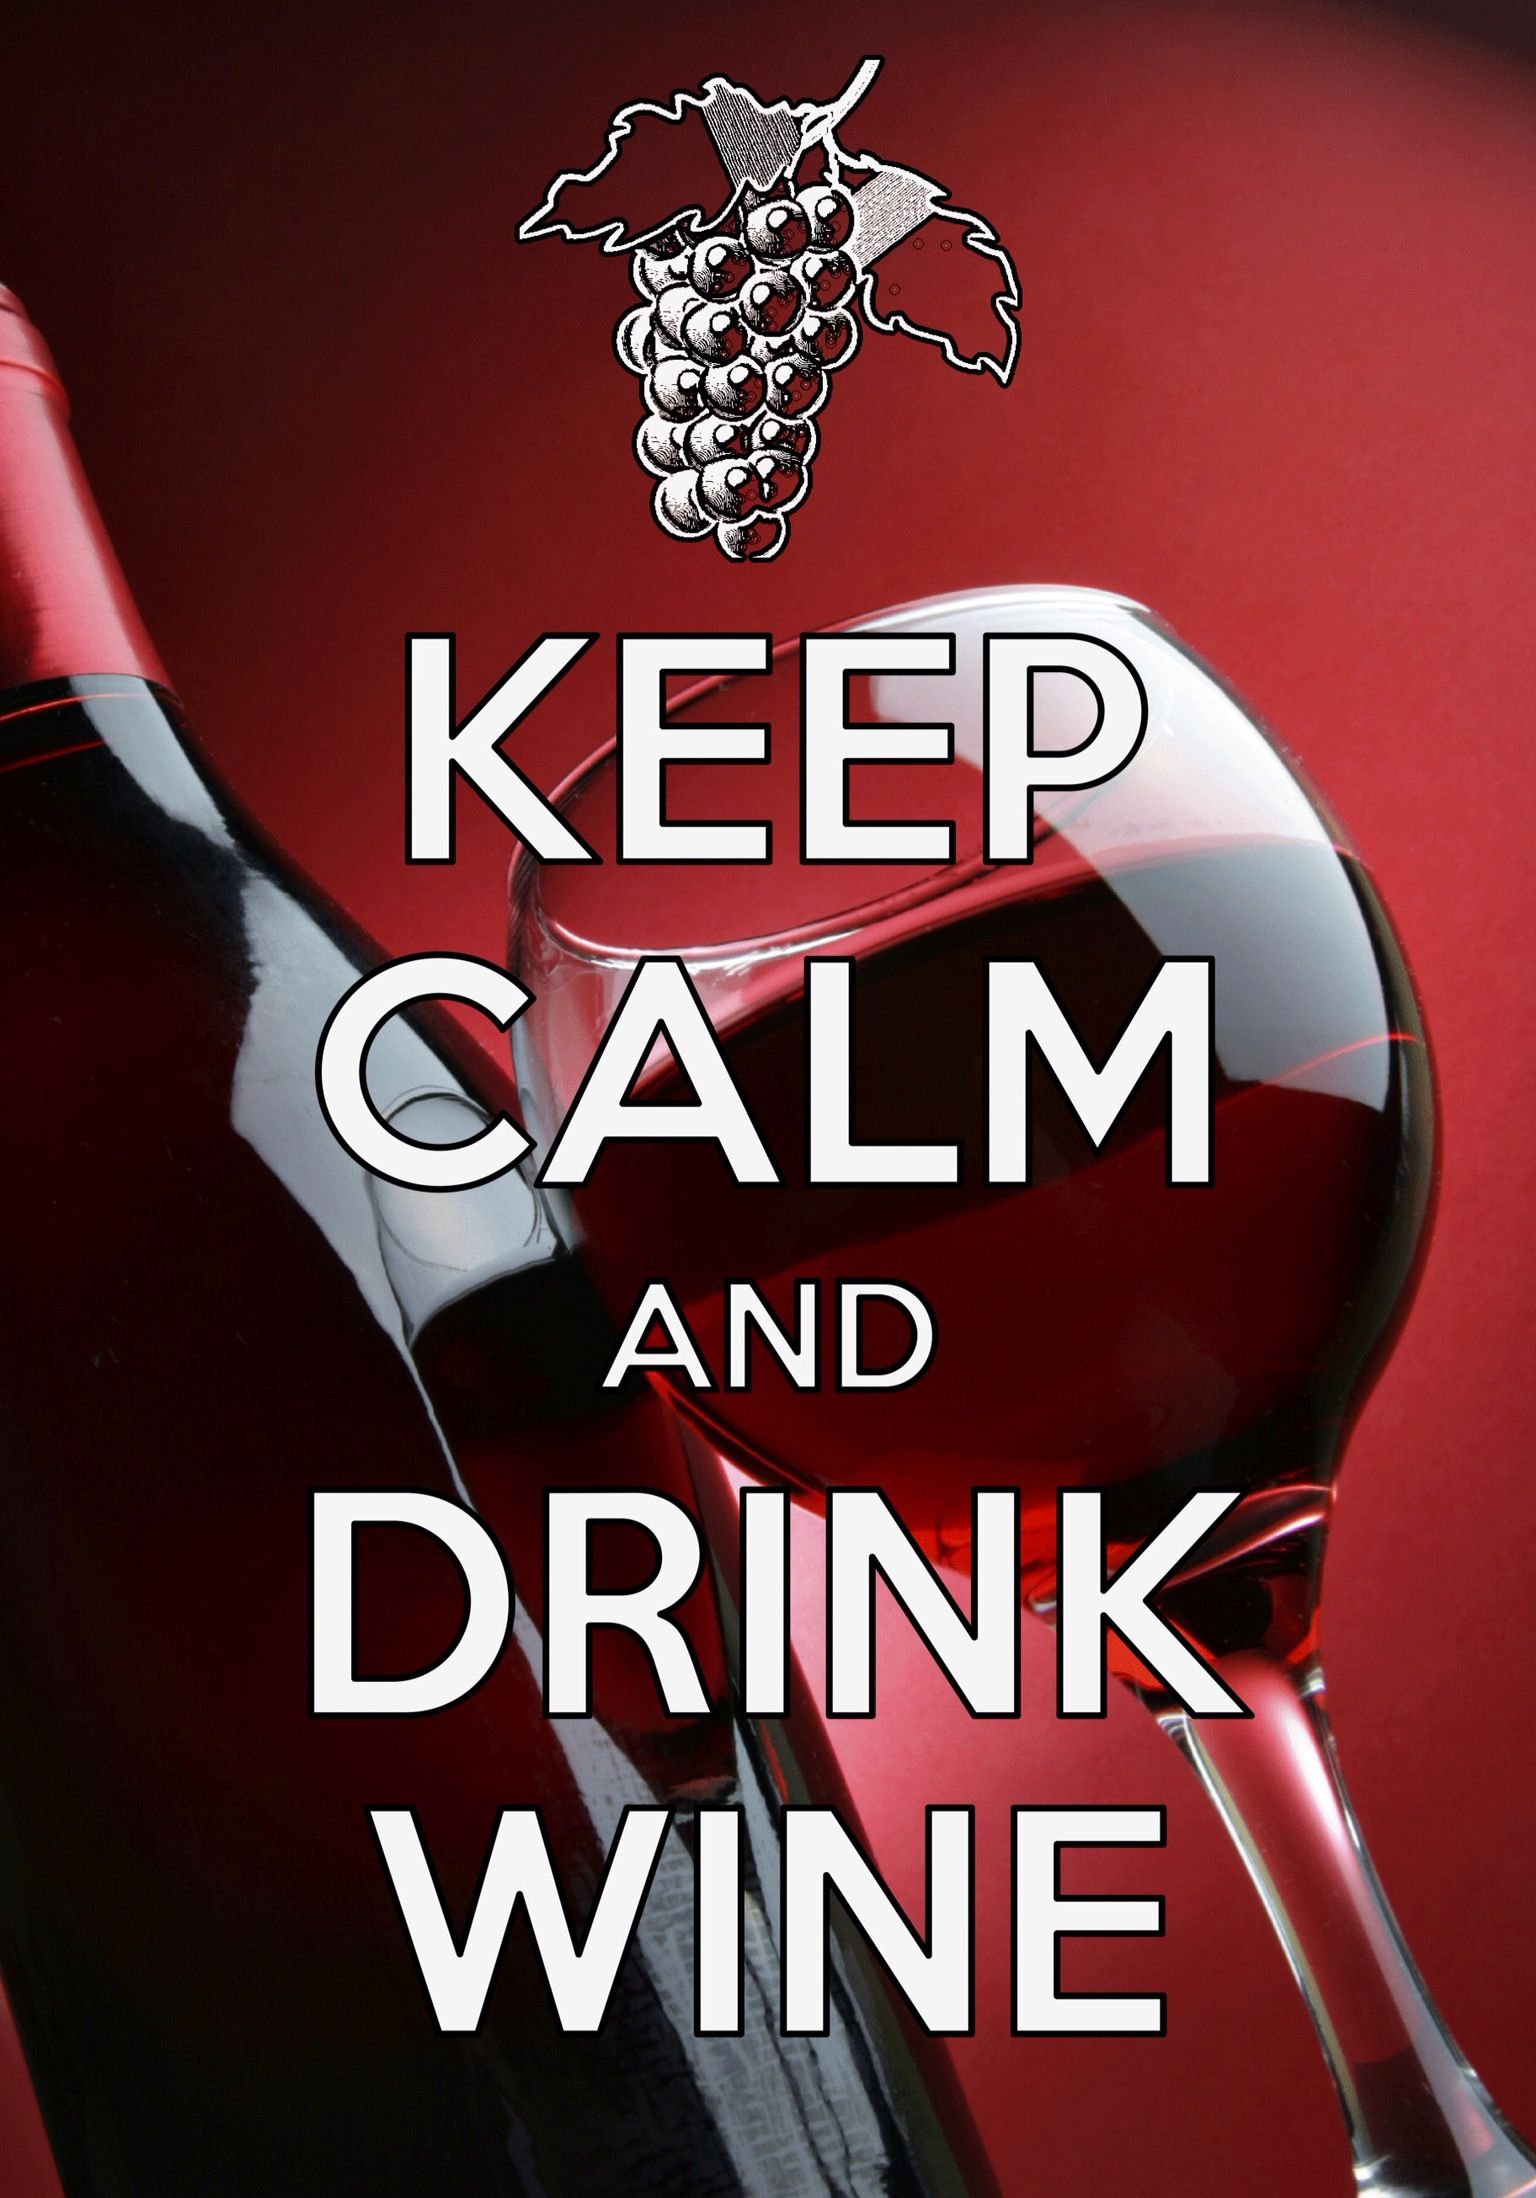 Pin By Stephanie Marie On Food For My Soul Wine Drinks Keep Calm And Drink Wine And Spirits